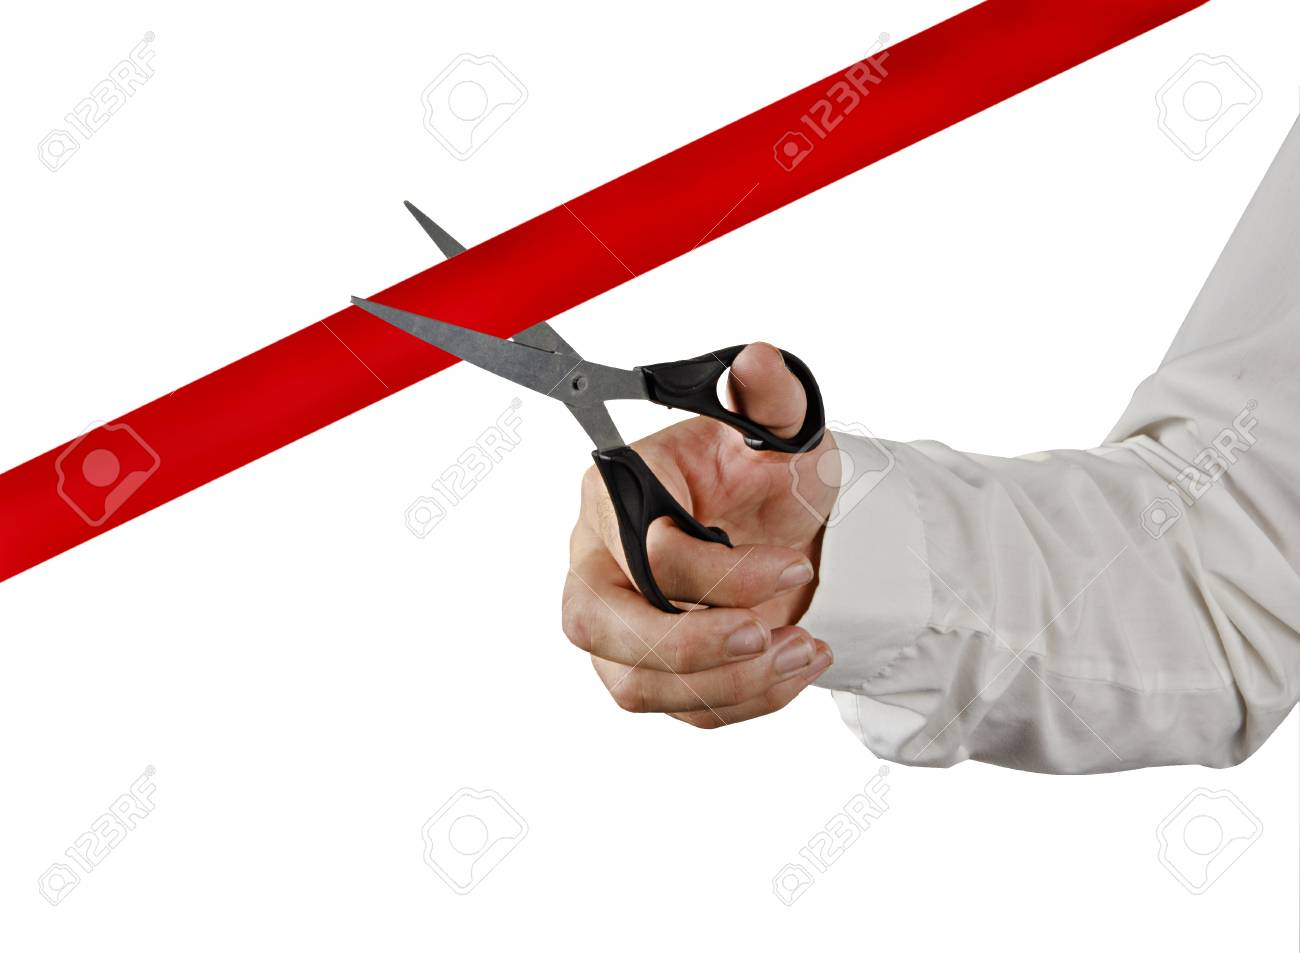 Cutting red tape Stock Photo - 14625540